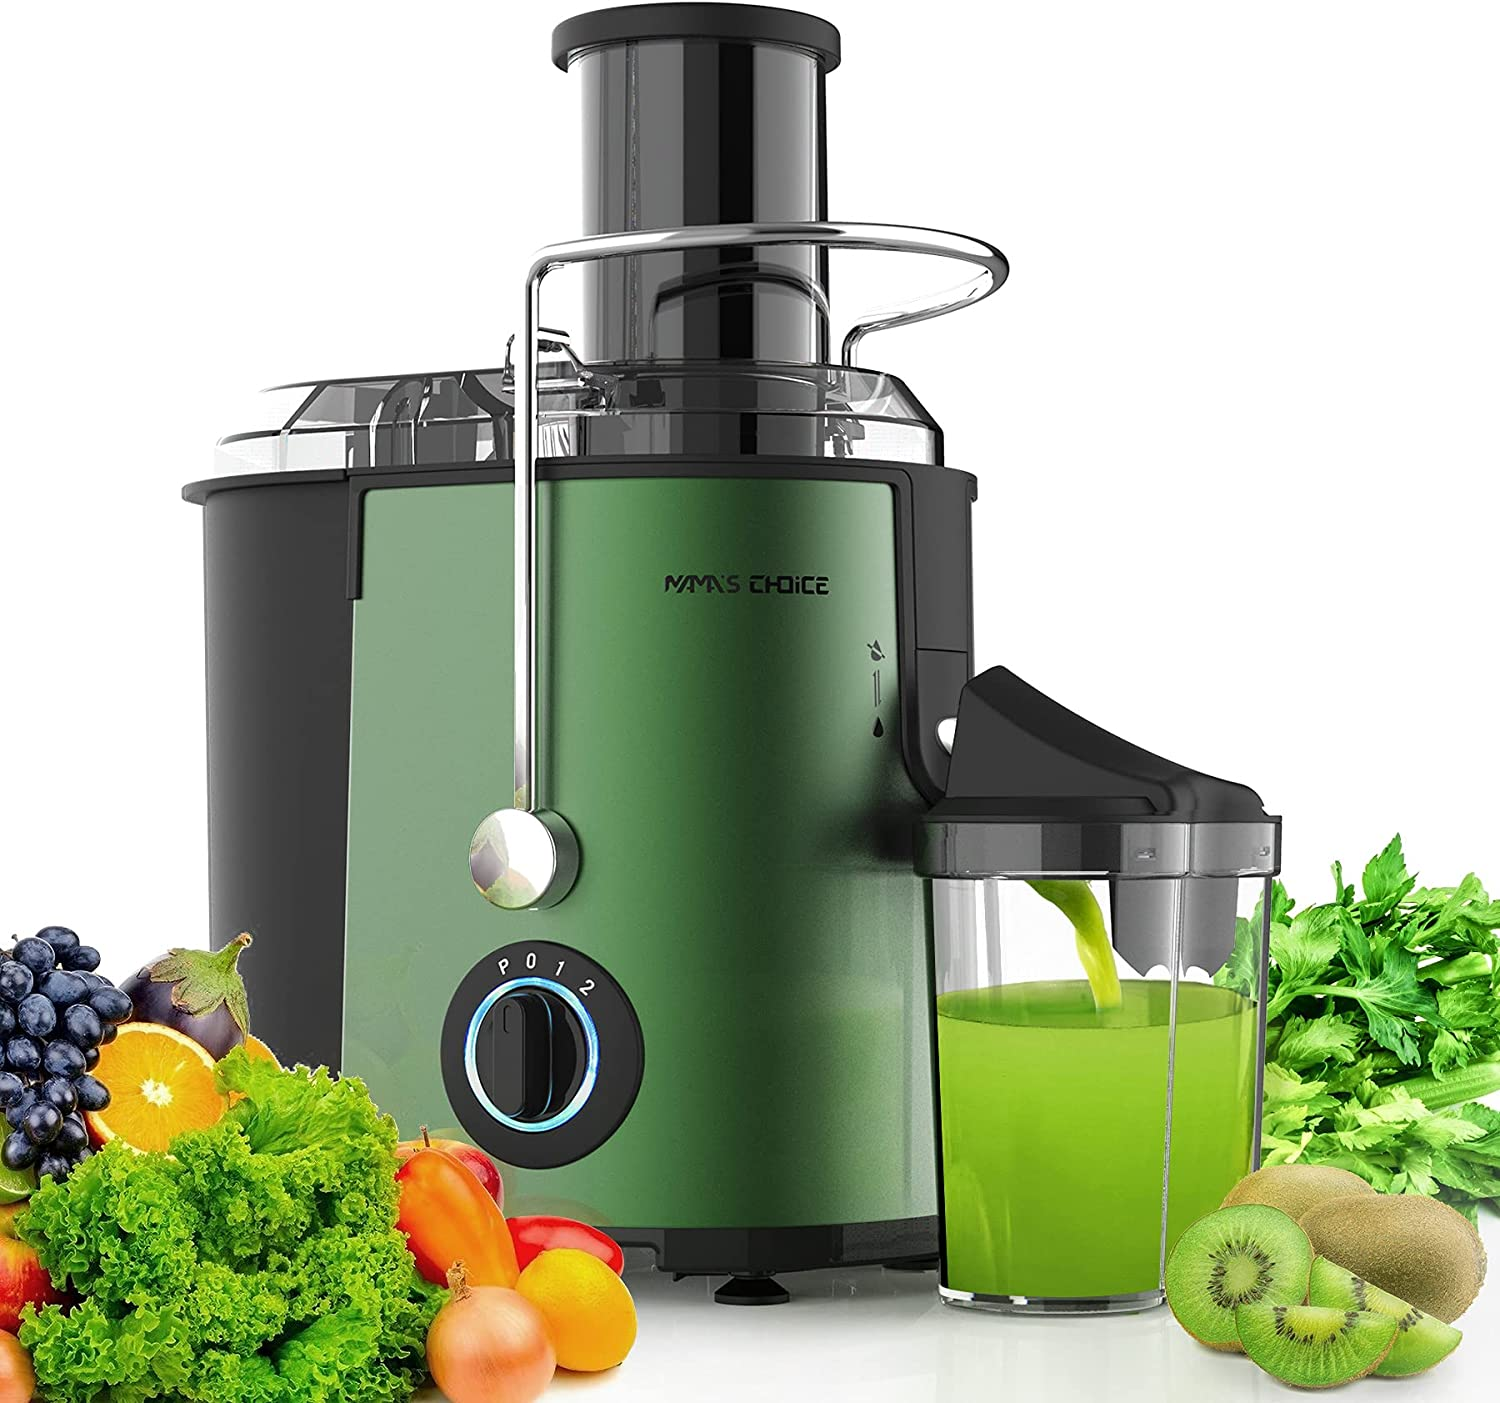 MAMA'S CHOICE Juicer Machine, Juice Extractor with Wide Feed Chute for Whole Fruit Vegetable, 800W Juicer Machine 3 Speed Control Fast Extract, Centrifugal Juicer with Anti-drip Function, Green